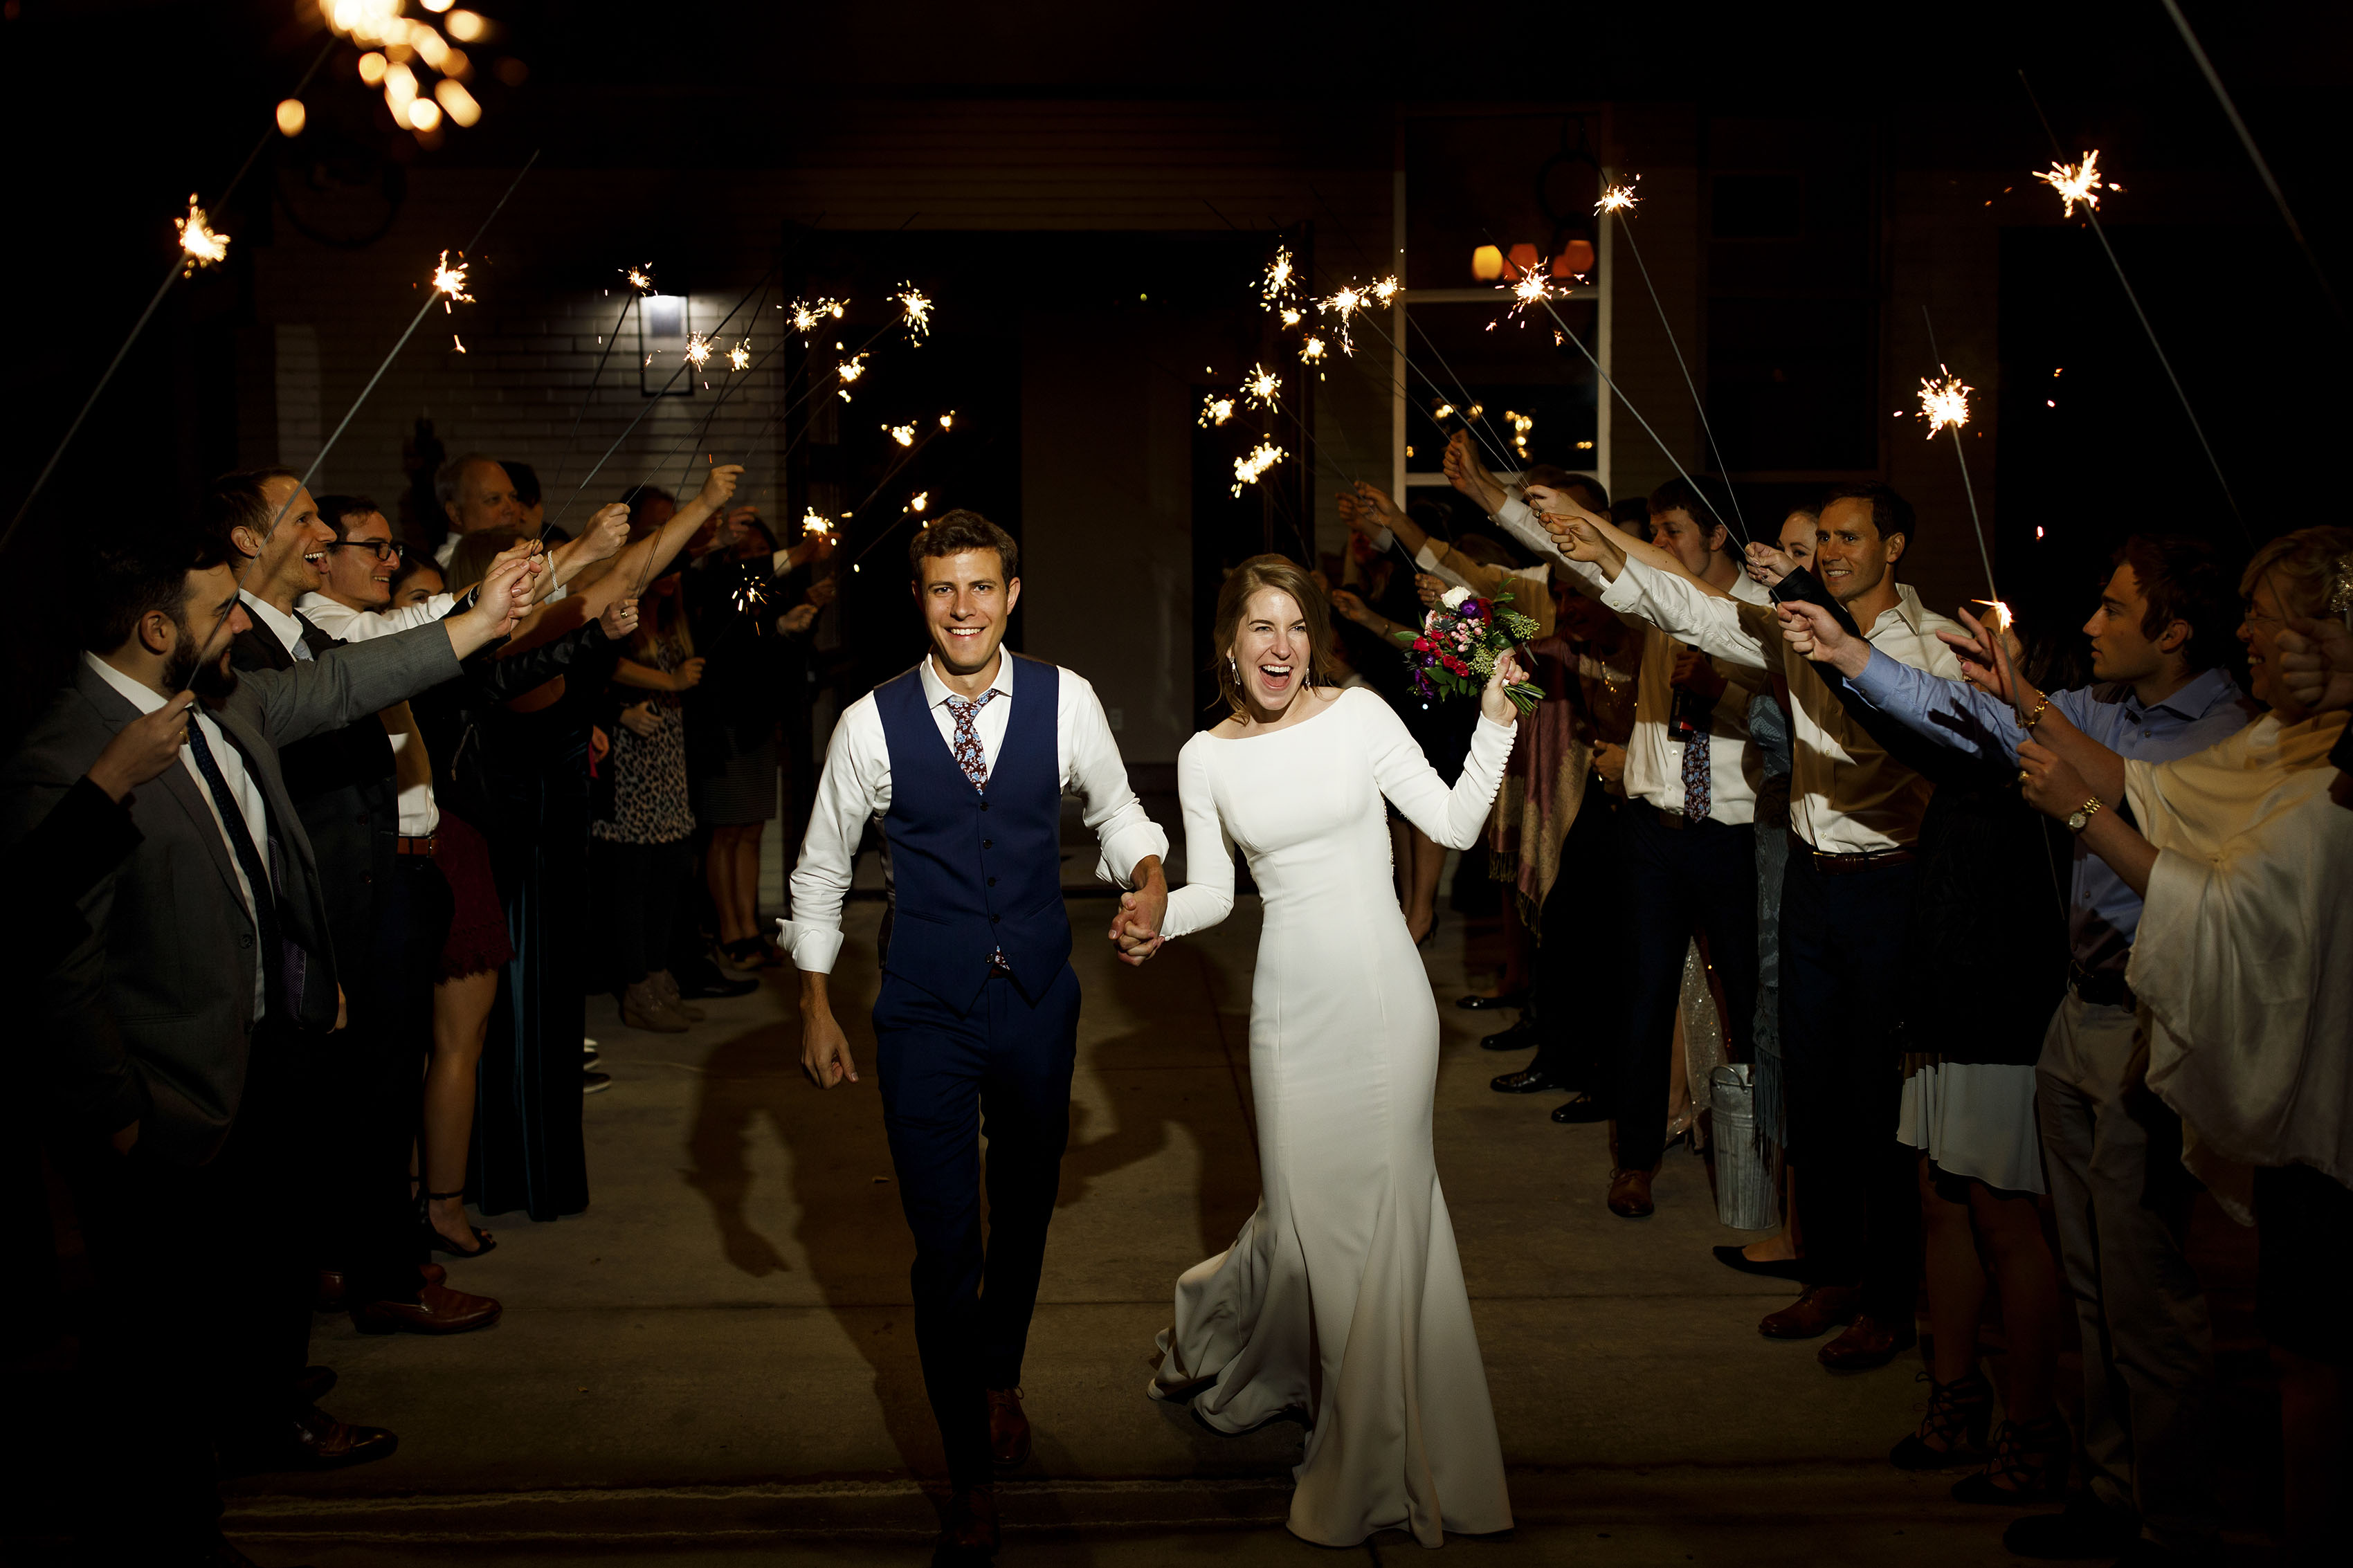 The newlyweds smile during their sparkler exit following their wedding atThe Vista at Applewood Golf Course